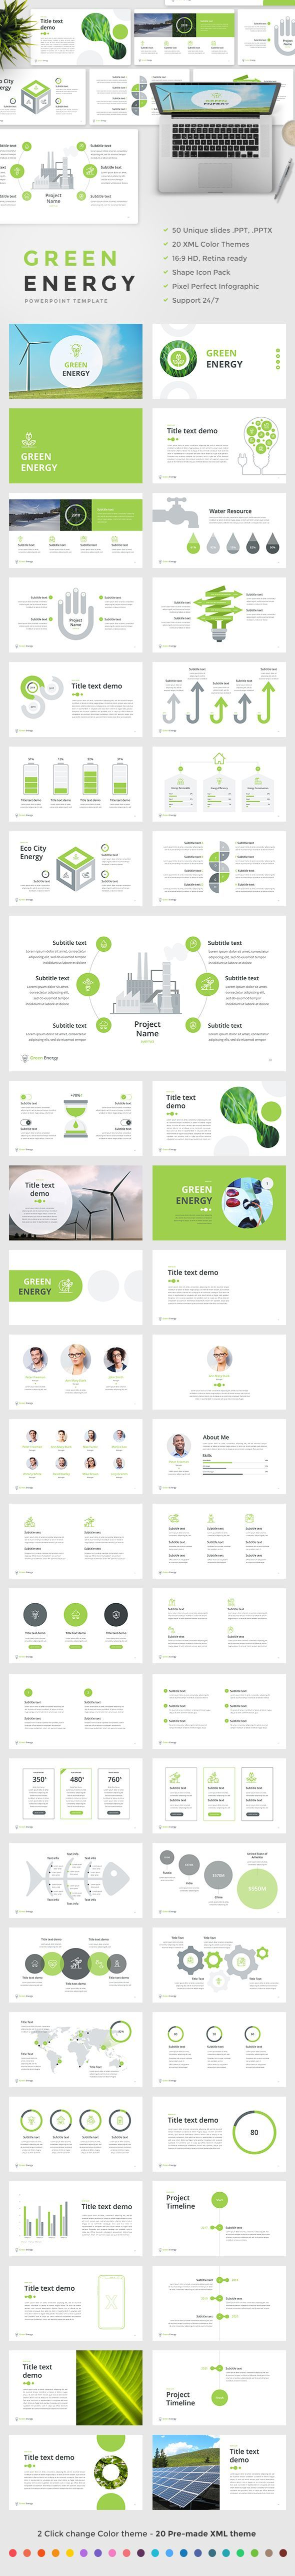 Best 36 free keynote template ideas on pinterest free keynote green energy powerpoint template nature powerpoint templates toneelgroepblik Choice Image